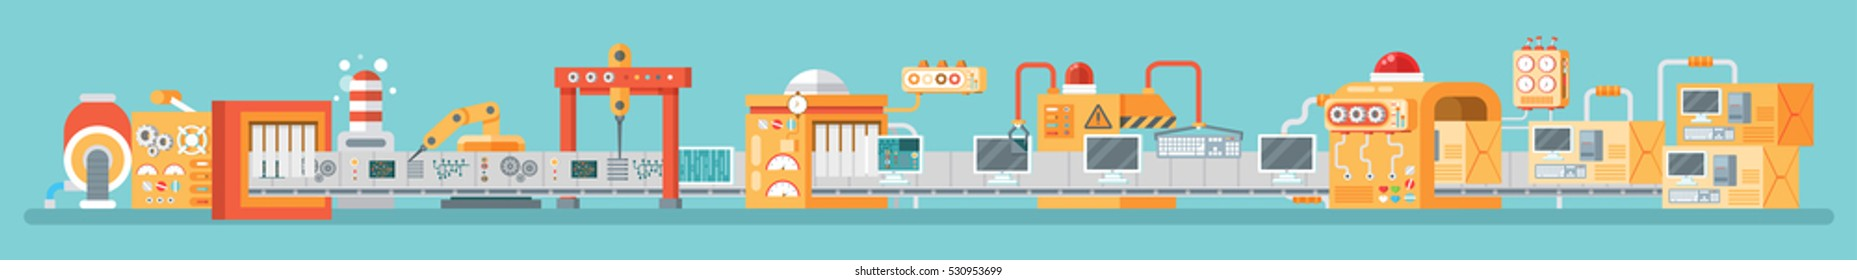 Stock vector horizontal illustration of conveyor assembly and packaging, production of personal computers in flat style on blue background for banners, websites, printed materials, info graphics